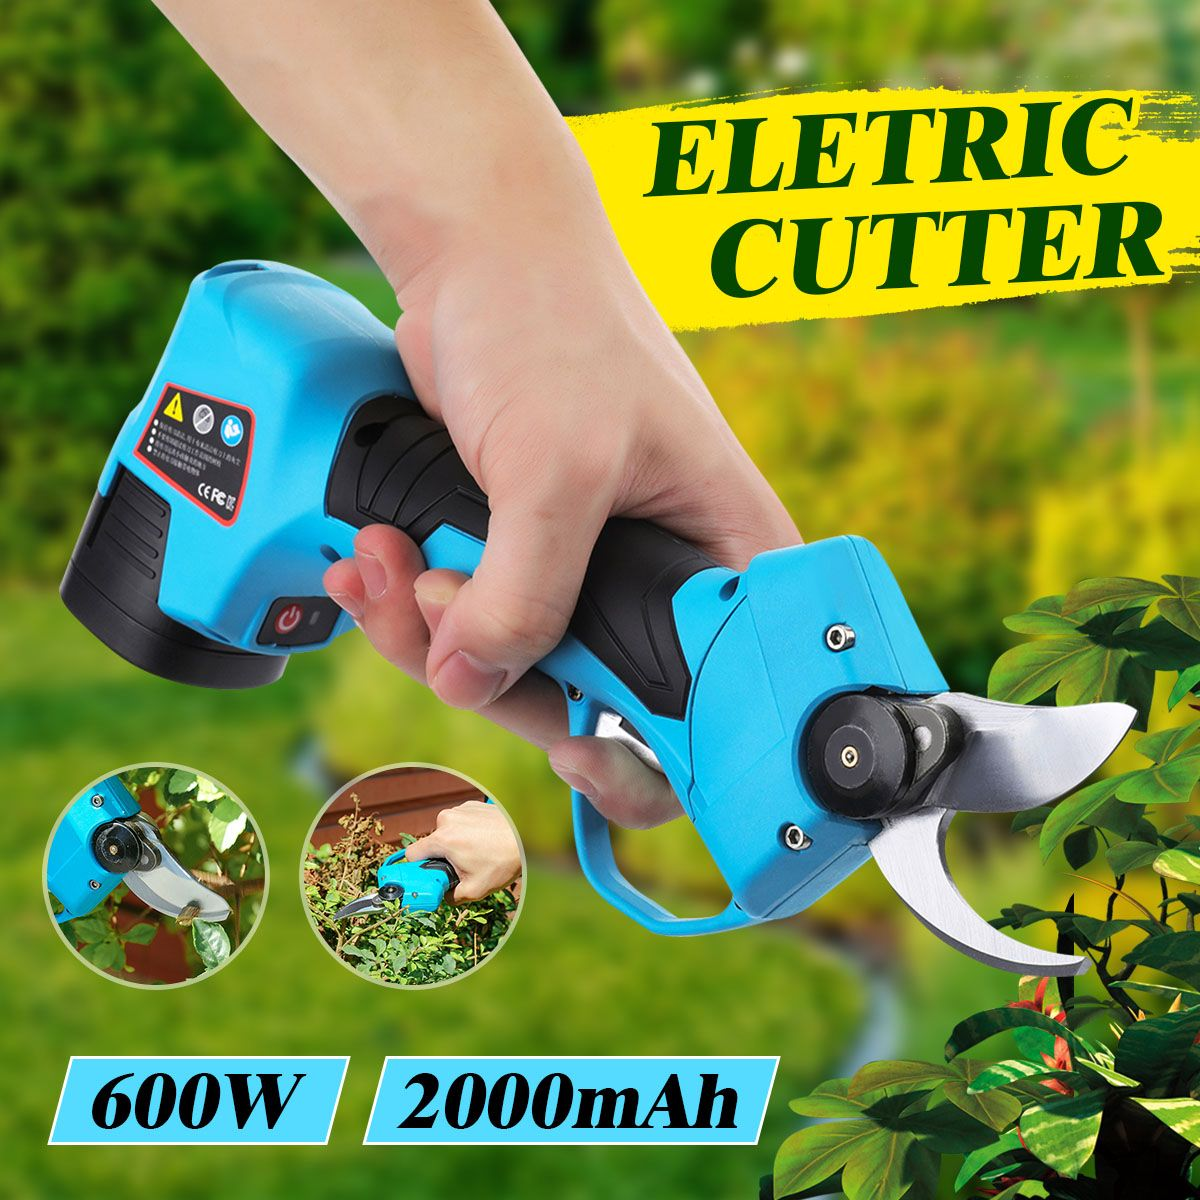 600W 2 Rechargeable Battery Electric Pruning Scissors Cordless Pruning Shears Garden Pruner Secateur Branch Cutter Cutting Tool